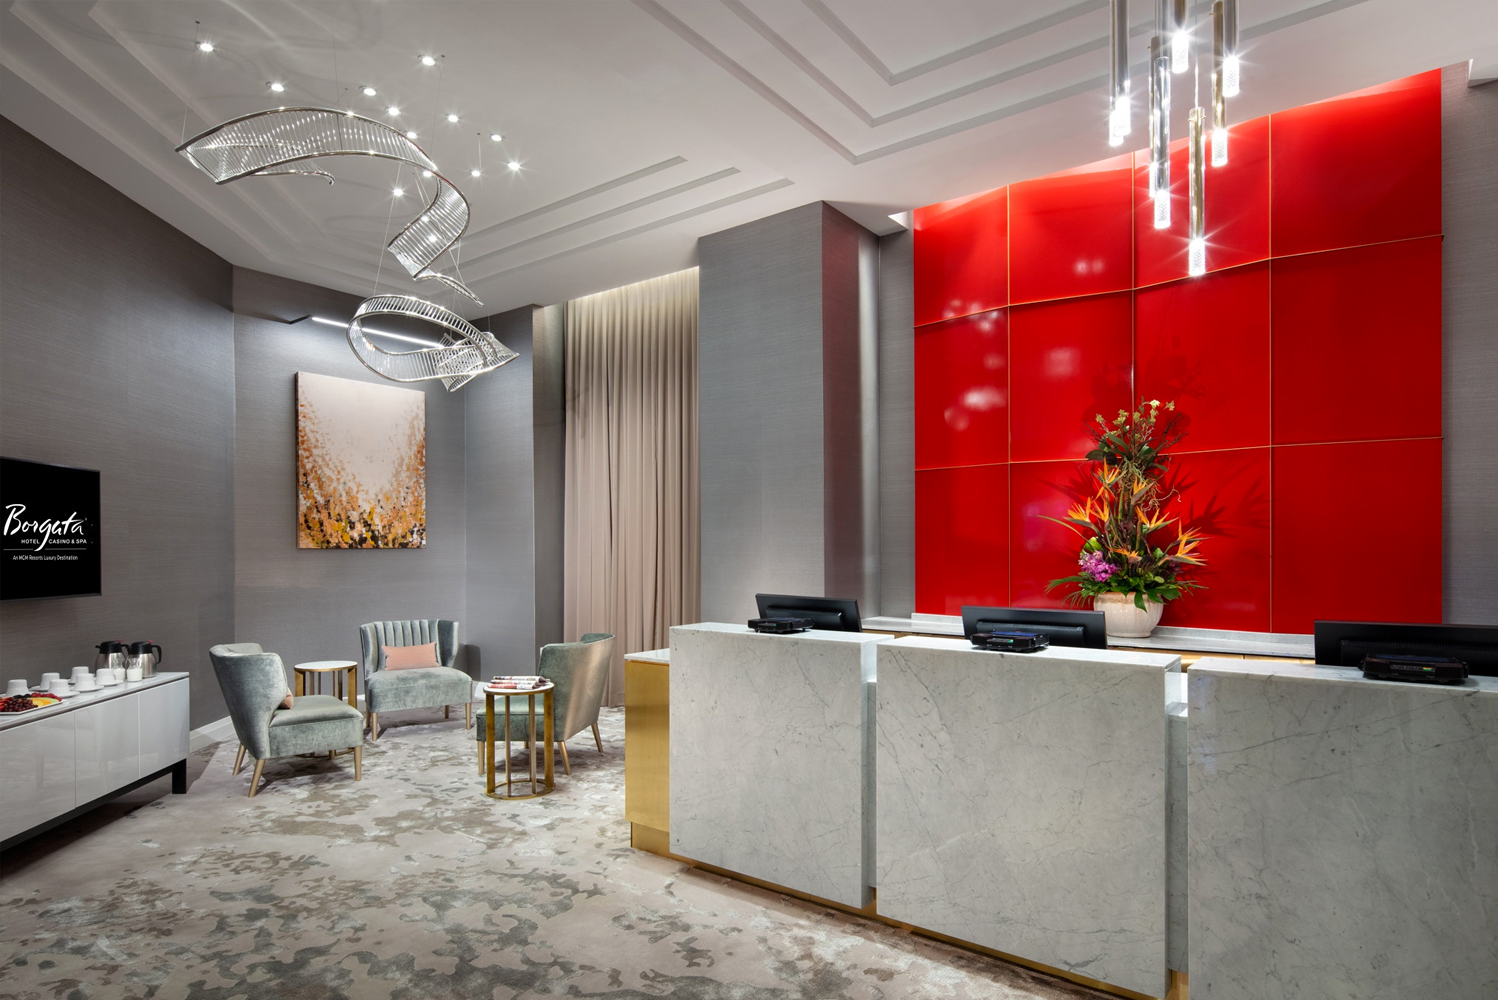 Borgata Hotel Casino & Spa, an MGM Resorts Luxury Destination, invested more than $14 million to add a lobby bar and adjacent VIP check-in, as well as redesign over 300 Fiore Suites. Photo credit: Floss Barber, Inc.